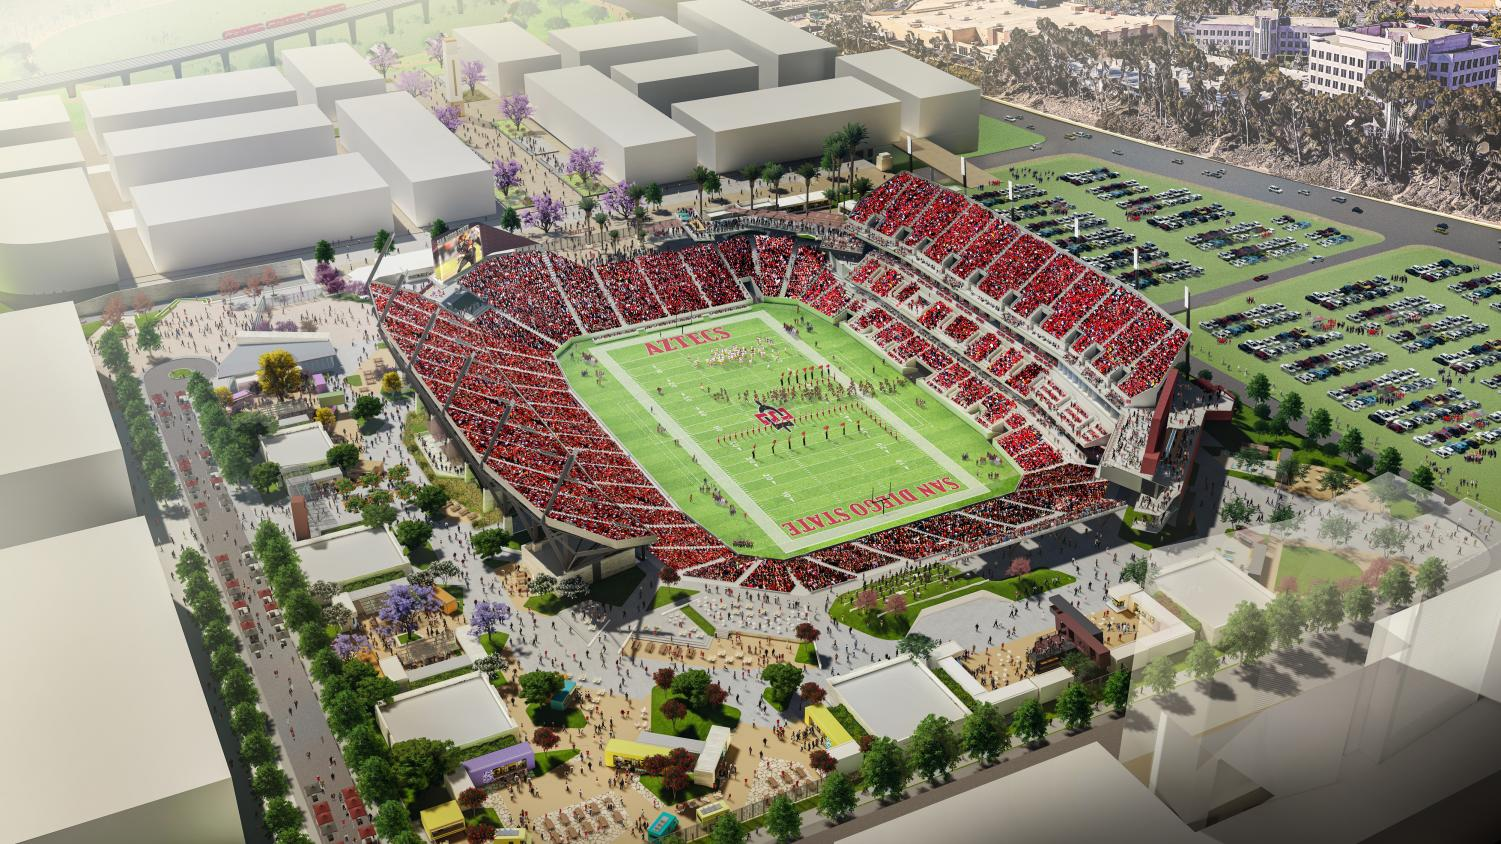 An aerial rendering of SDSU's proposed multi-use stadium at the site of its Mission Valley expansion.